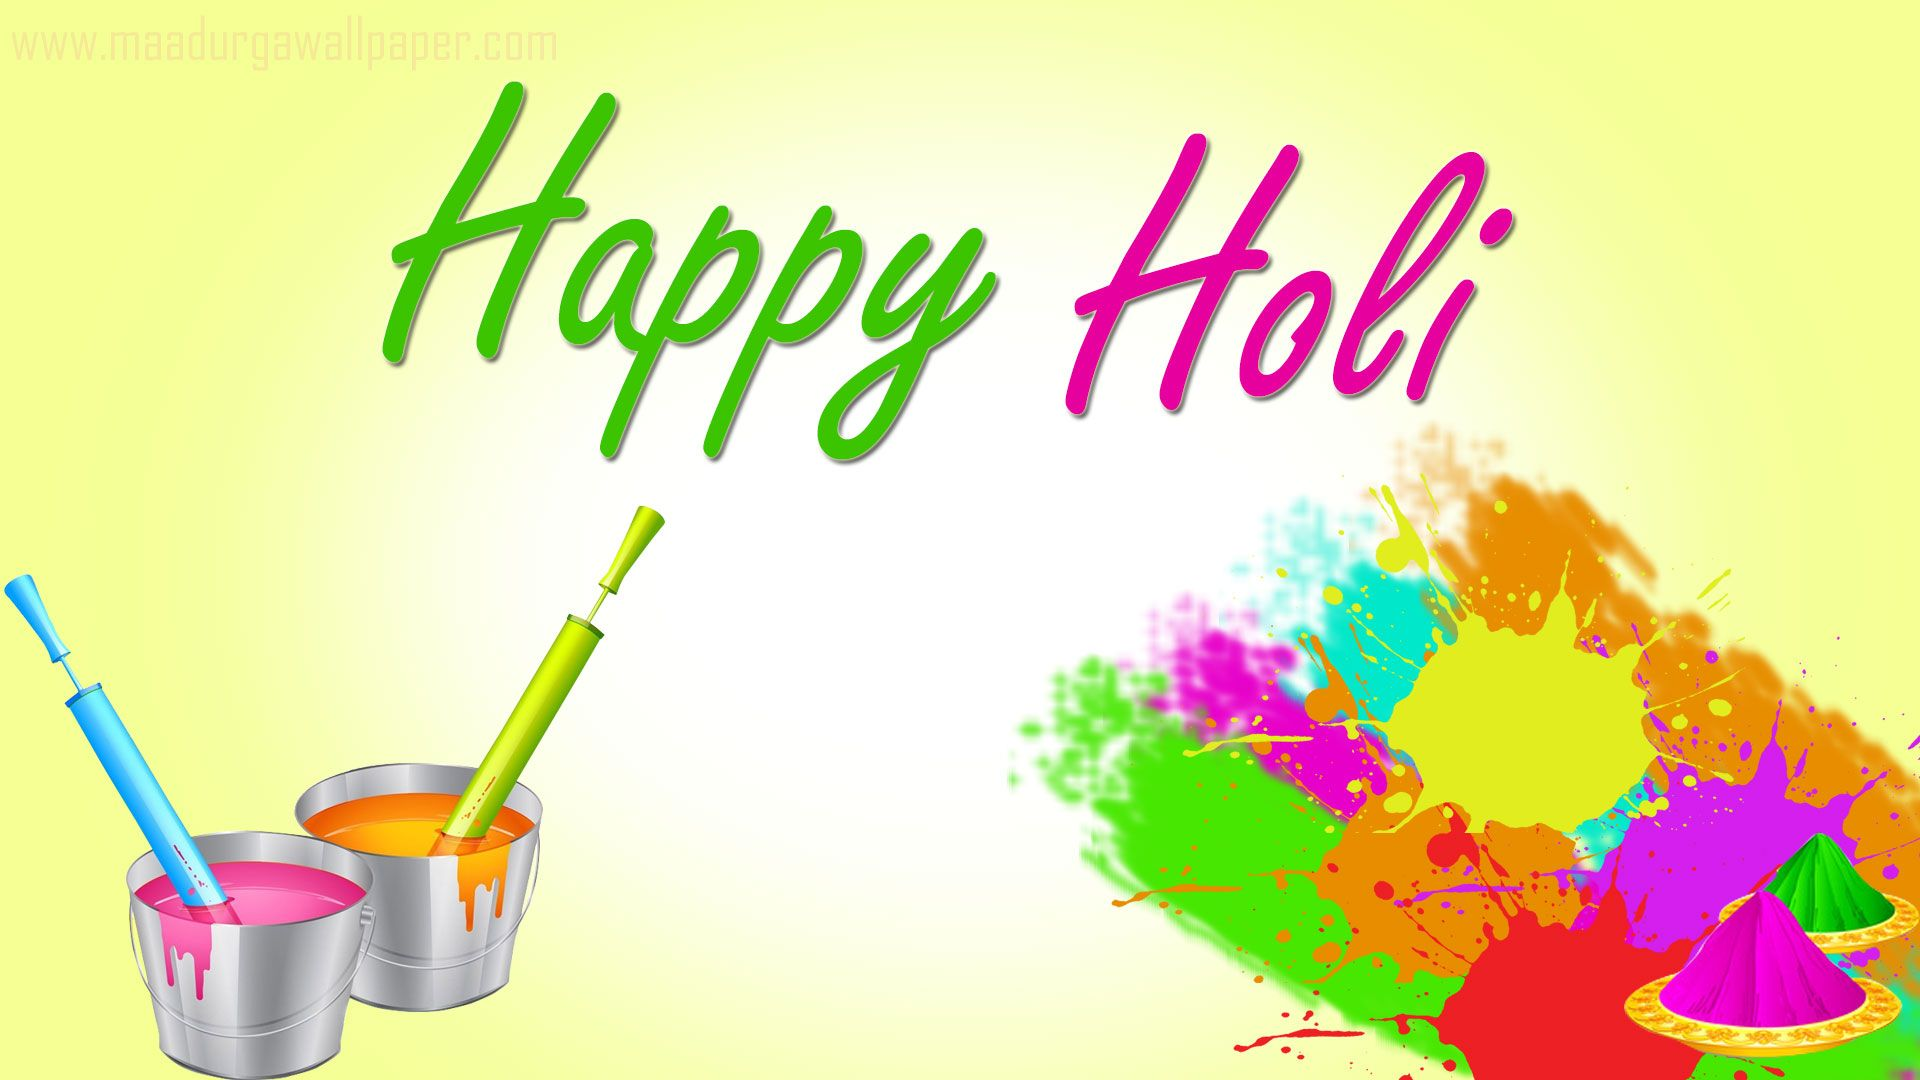 Happy Holi Wallpapers Holi Images download Happy holi images 1920x1080